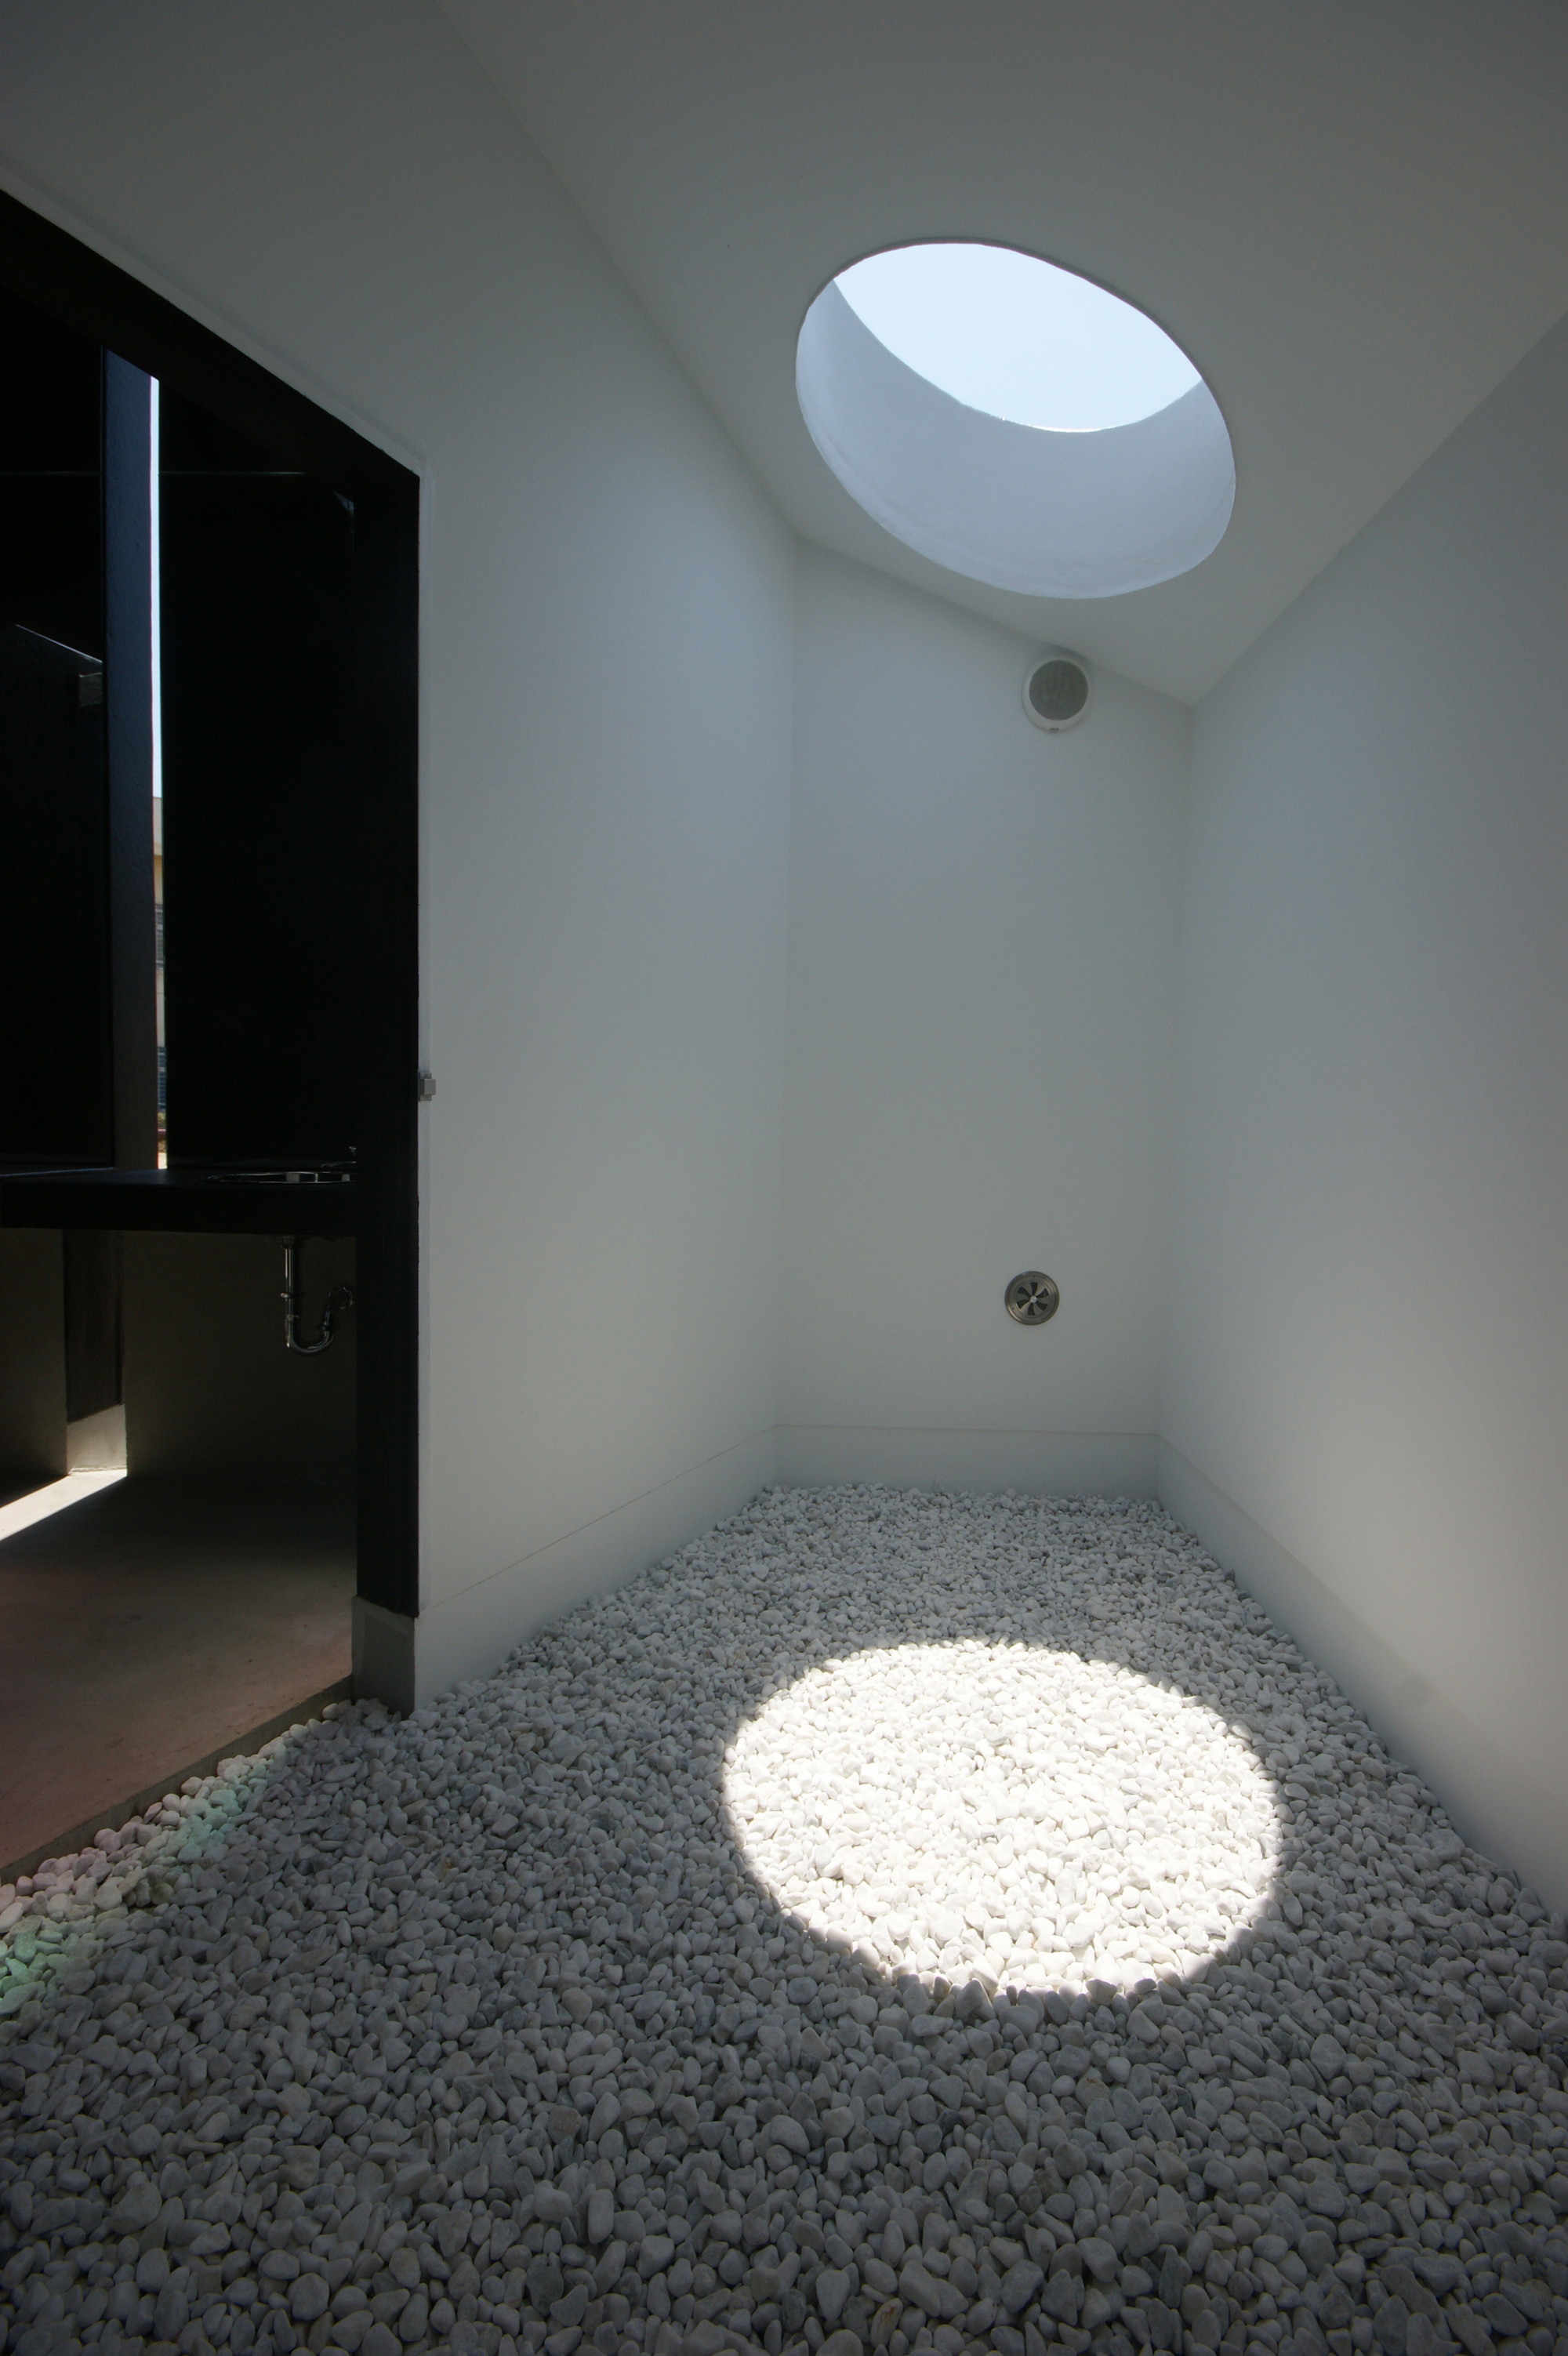 House Of Toilet,Courtesy Of Future Scape Architects